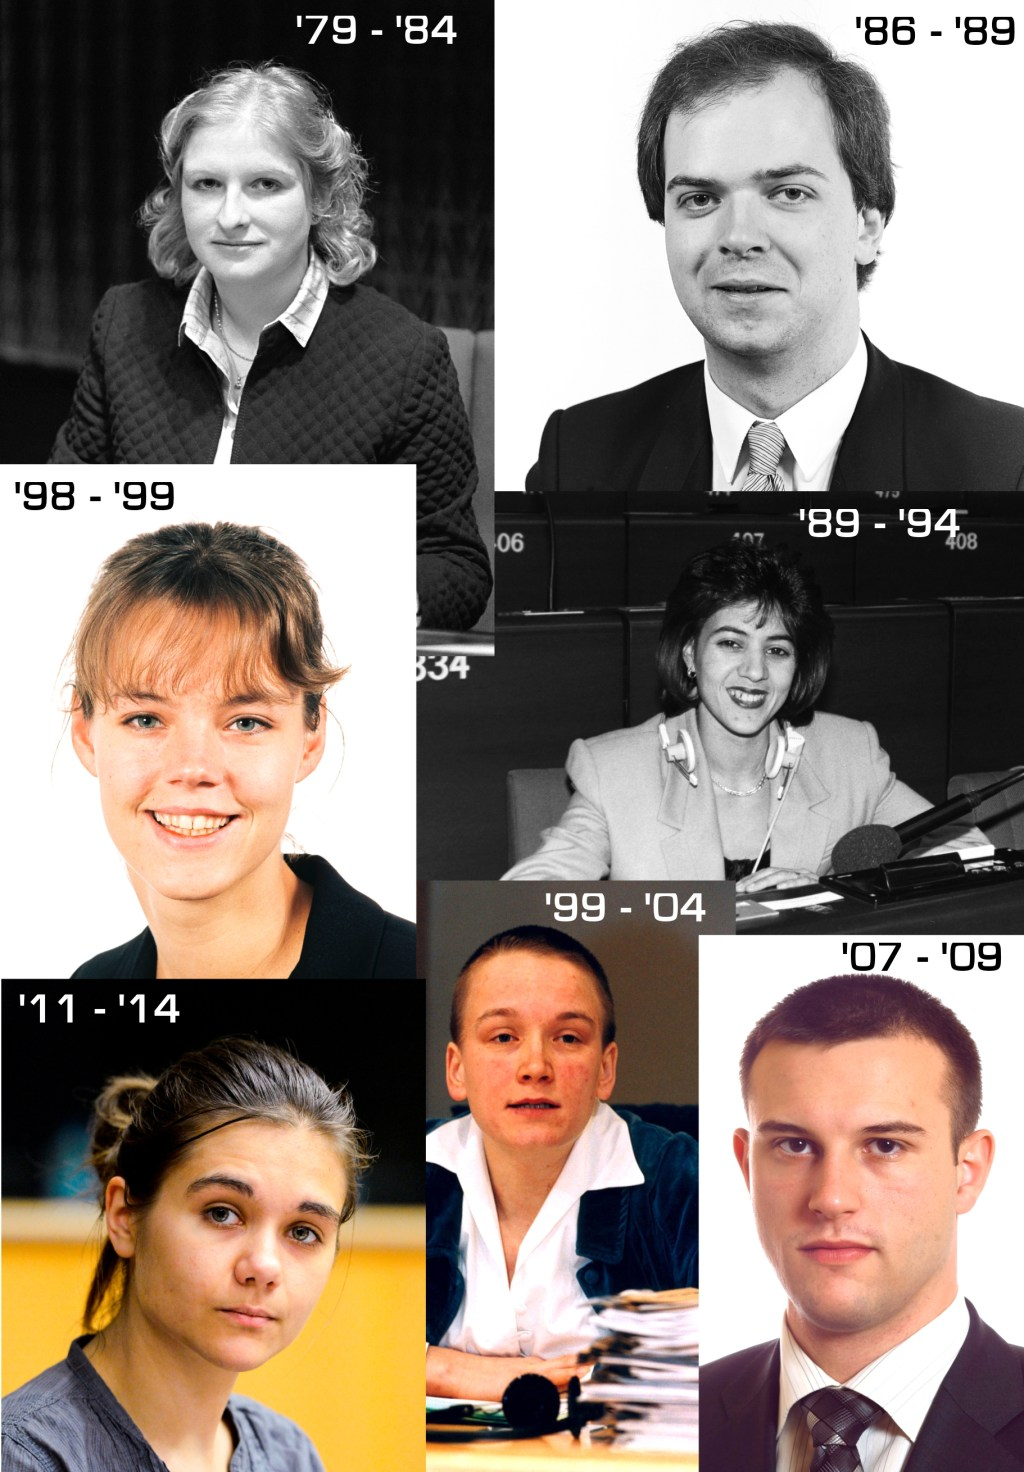 The youngest MEPs